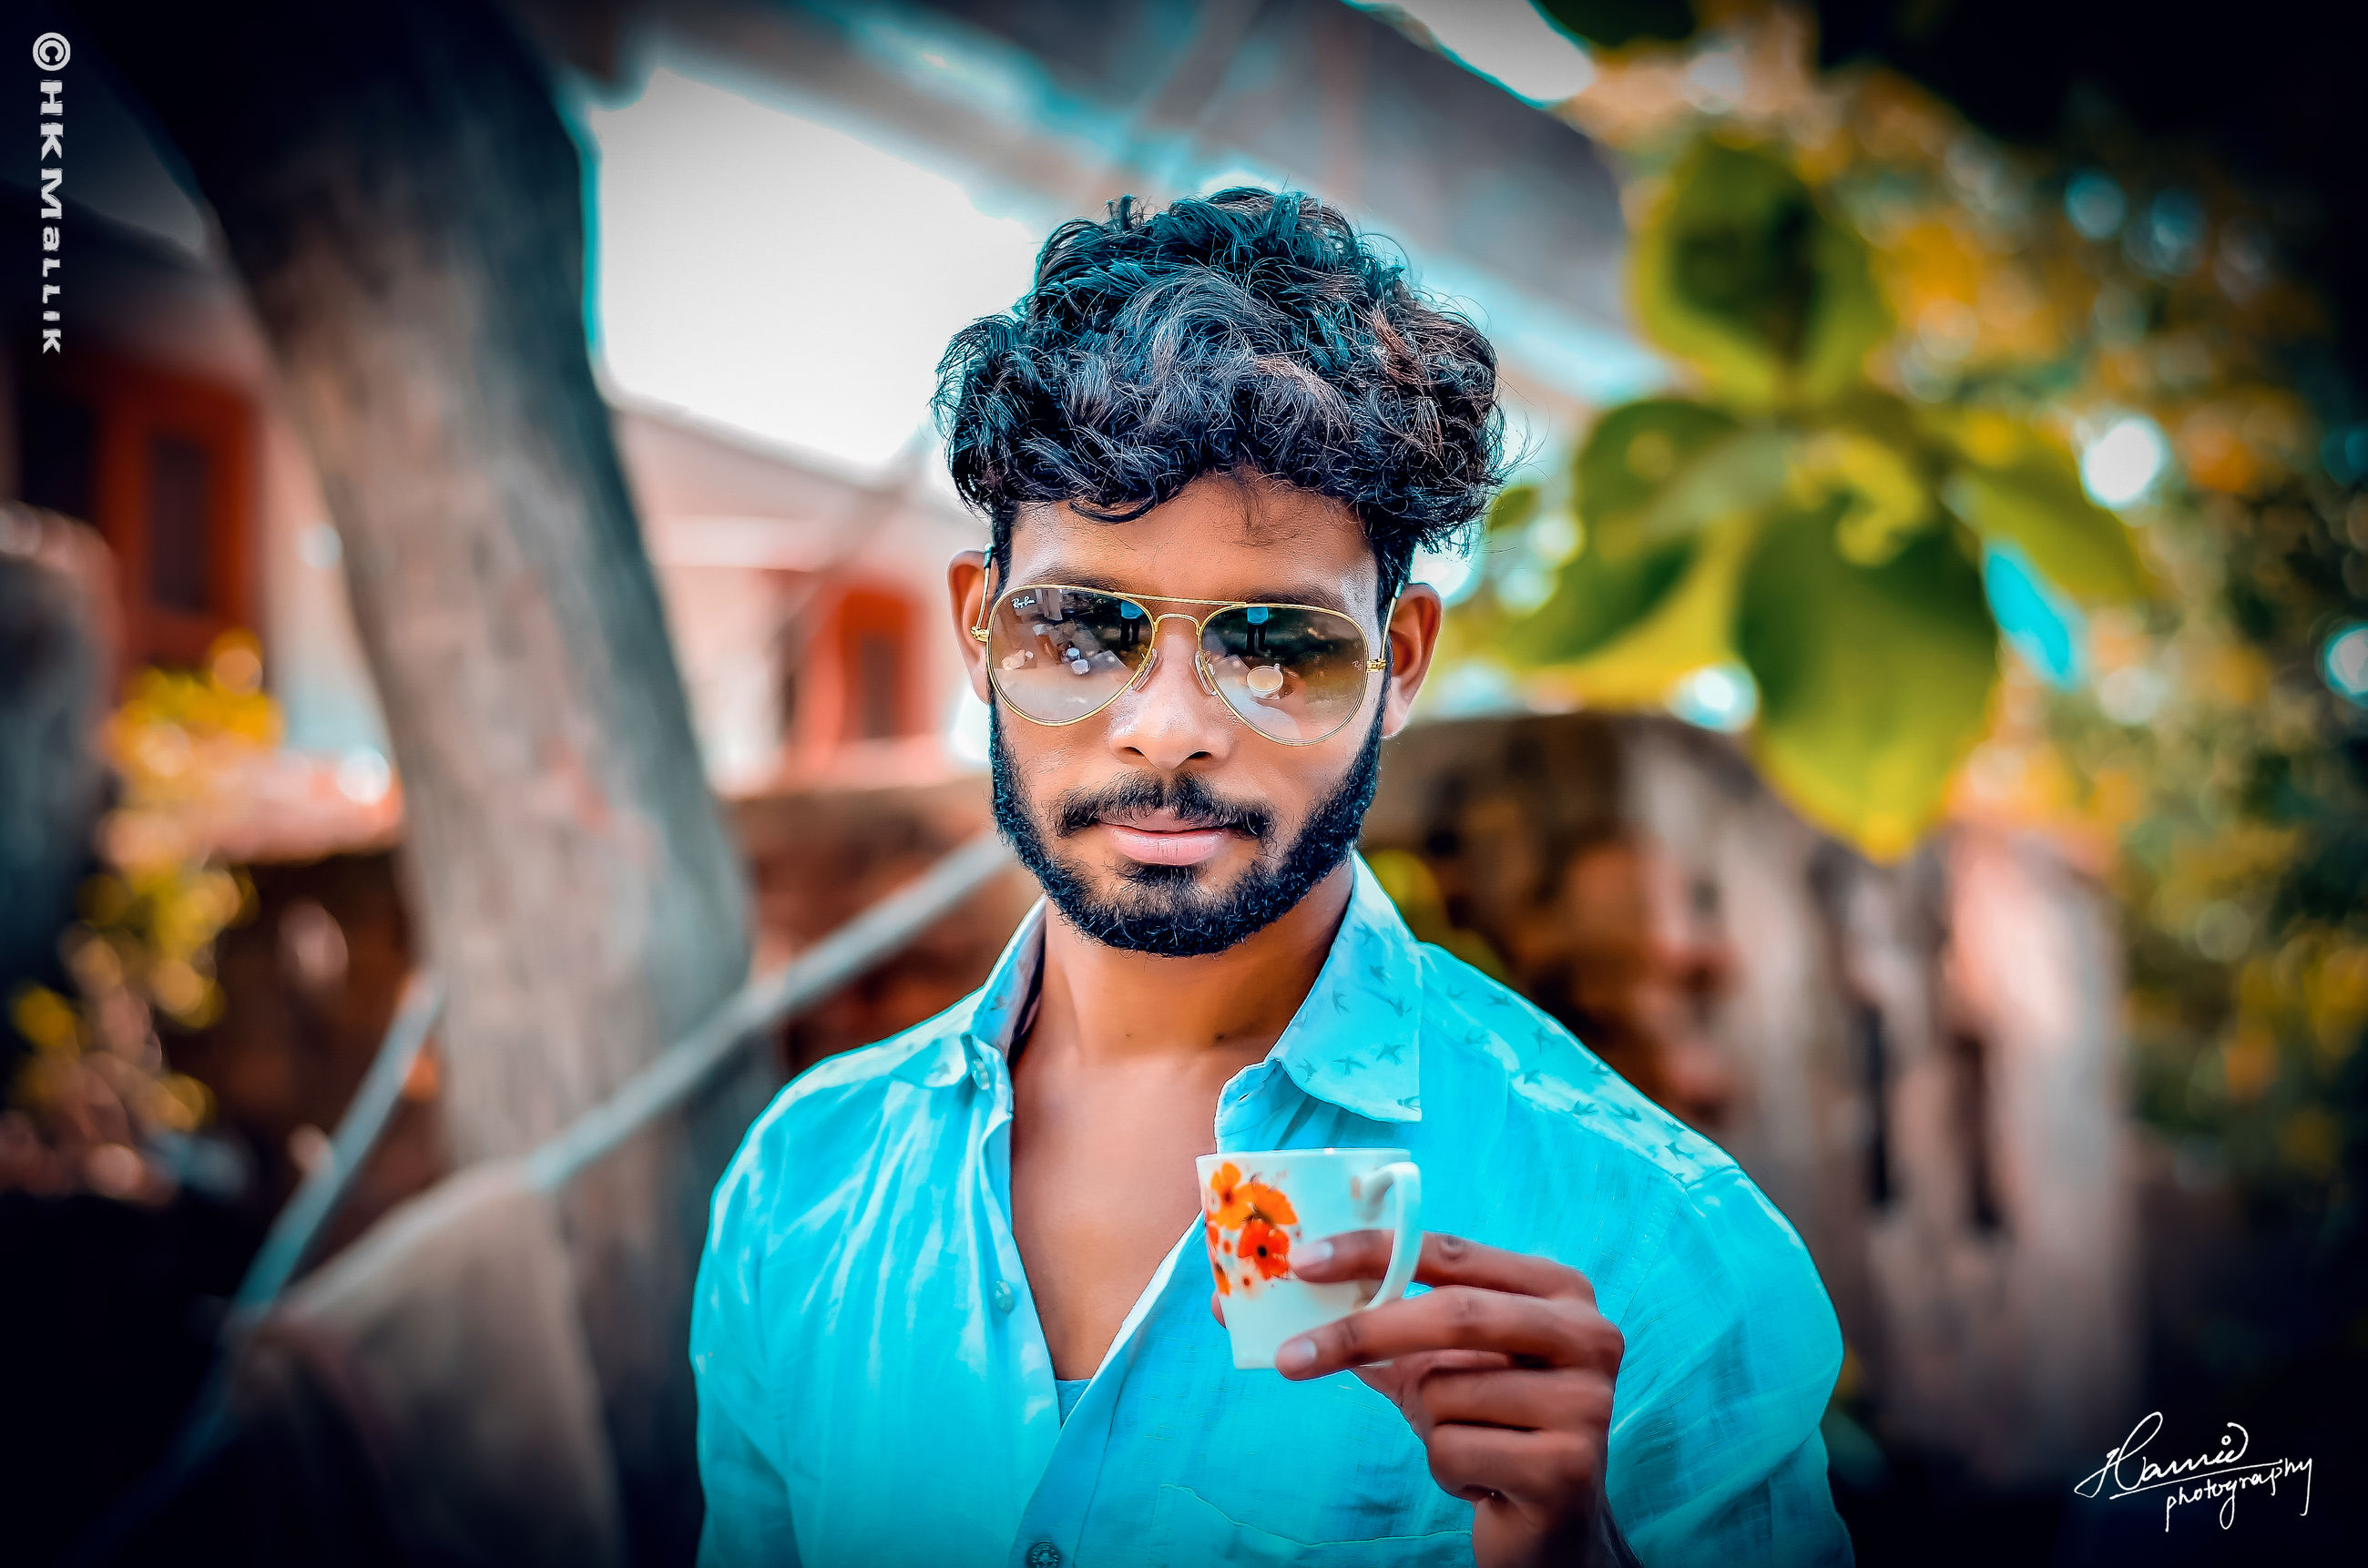 food and drink, real people, front view, one person, lifestyles, leisure activity, holding, incidental people, portrait, young men, young adult, beard, focus on foreground, casual clothing, facial hair, glasses, food, men, mid adult men, smiling, fashion